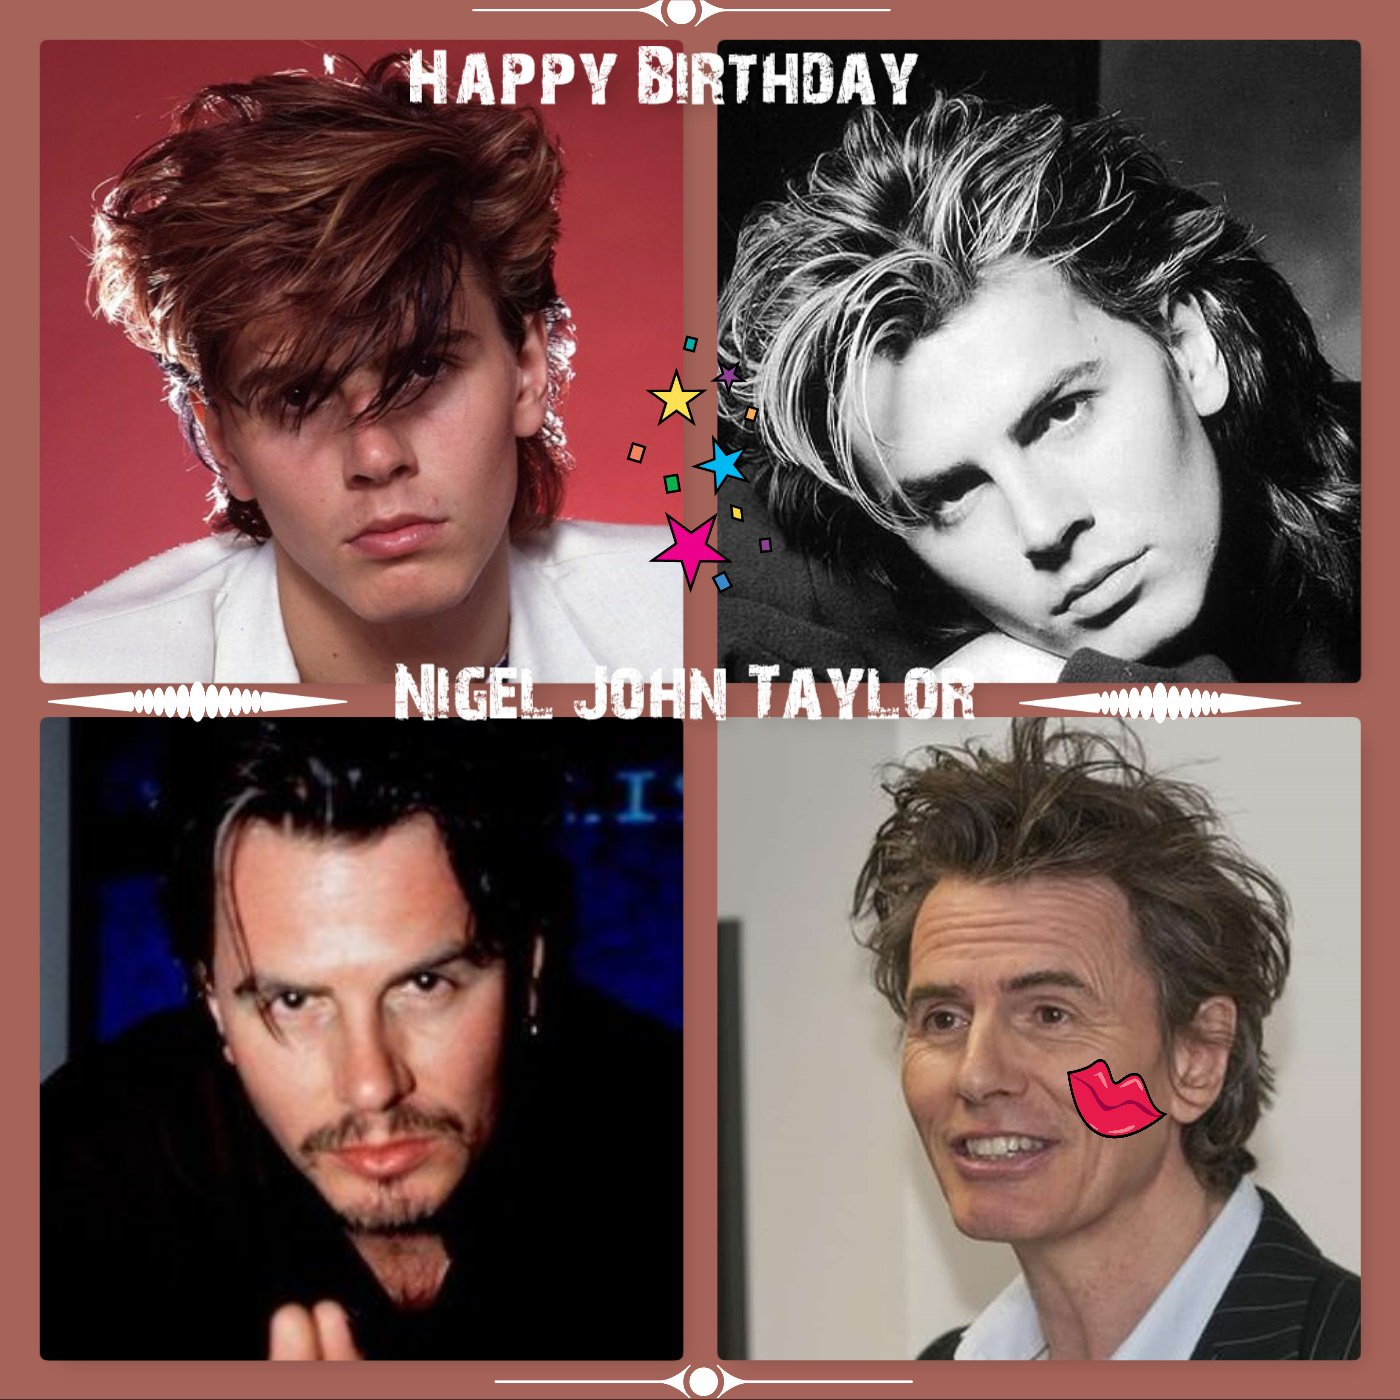 Happy belated Birthday John Taylor Hope you had a great day with family and friends.